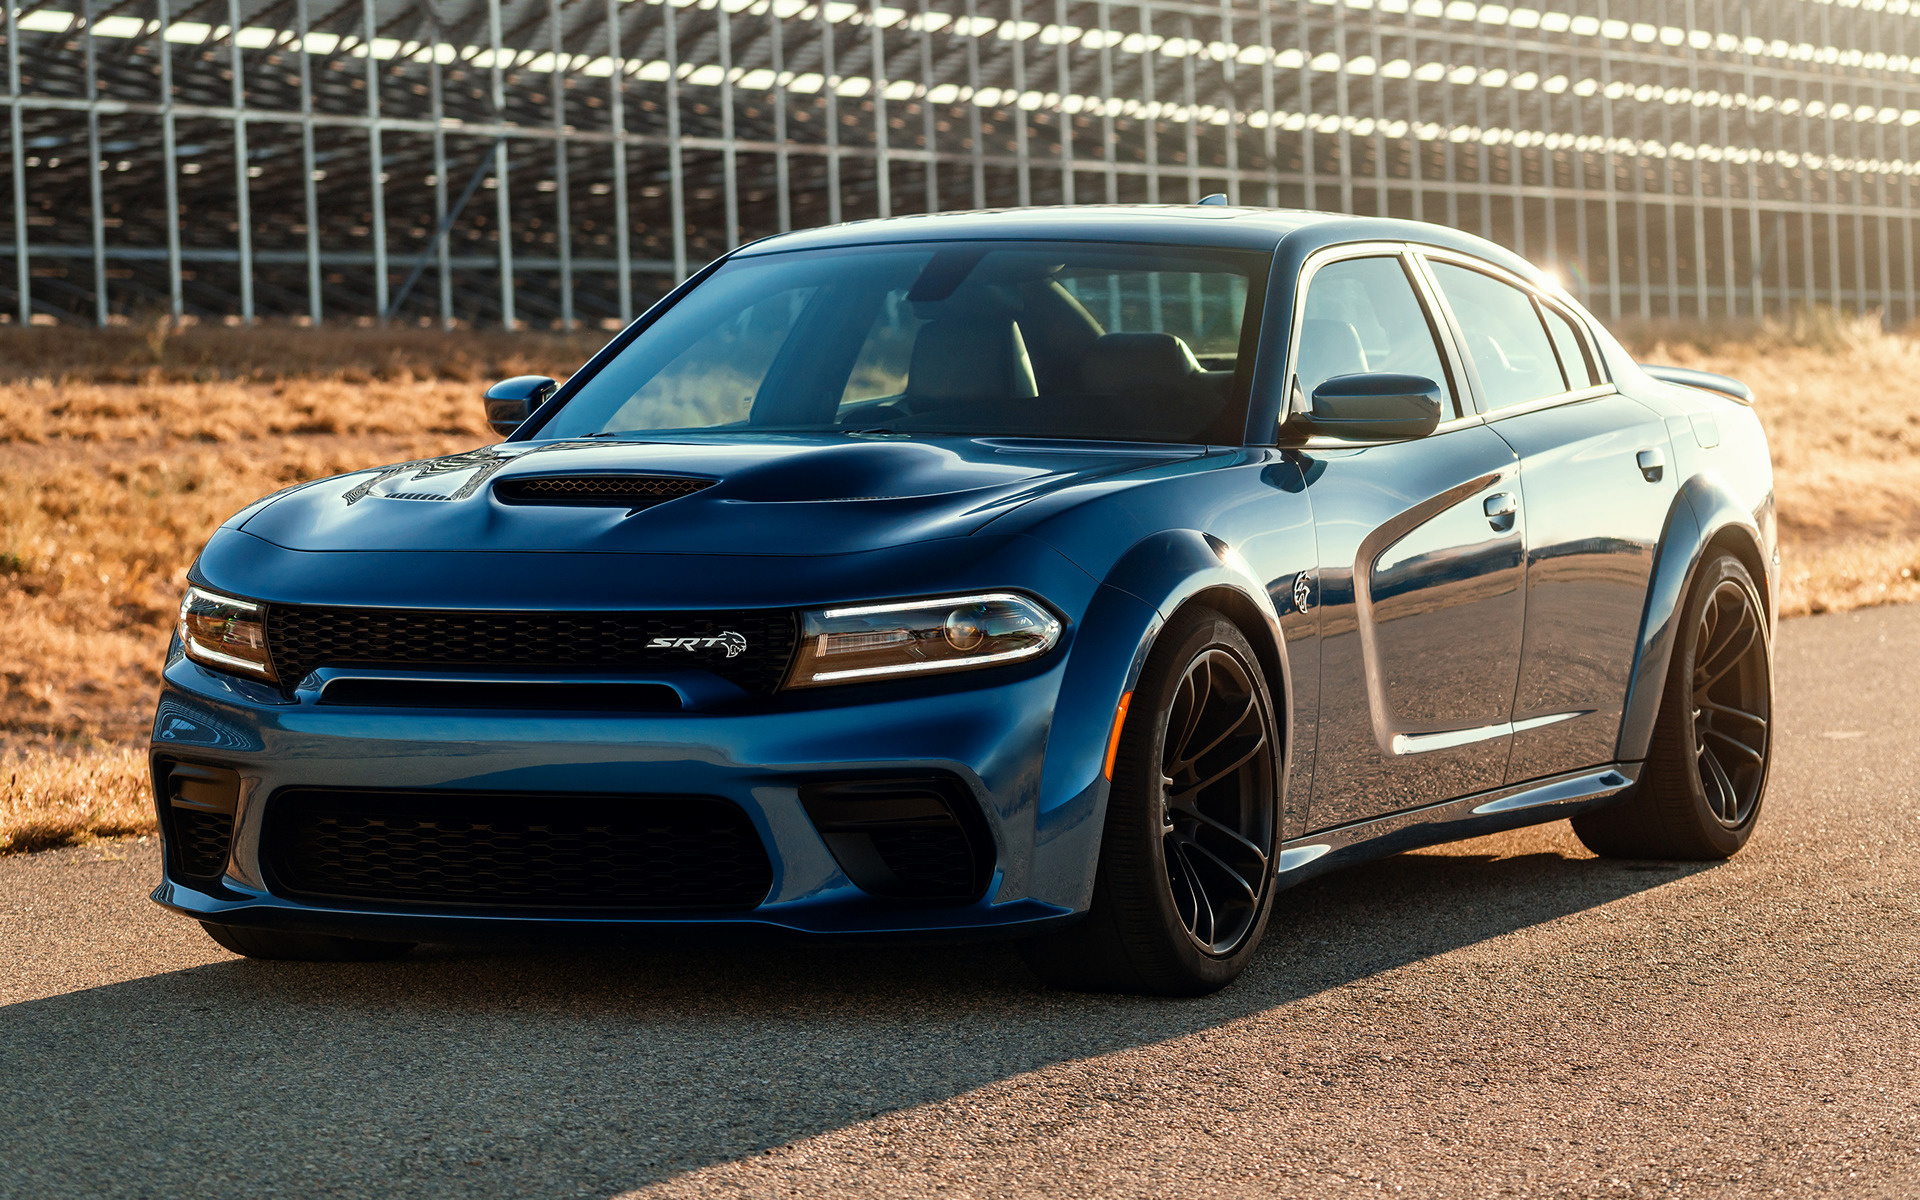 2020 Dodge Charger Srt Hellcat Widebody Wallpapers And Hd